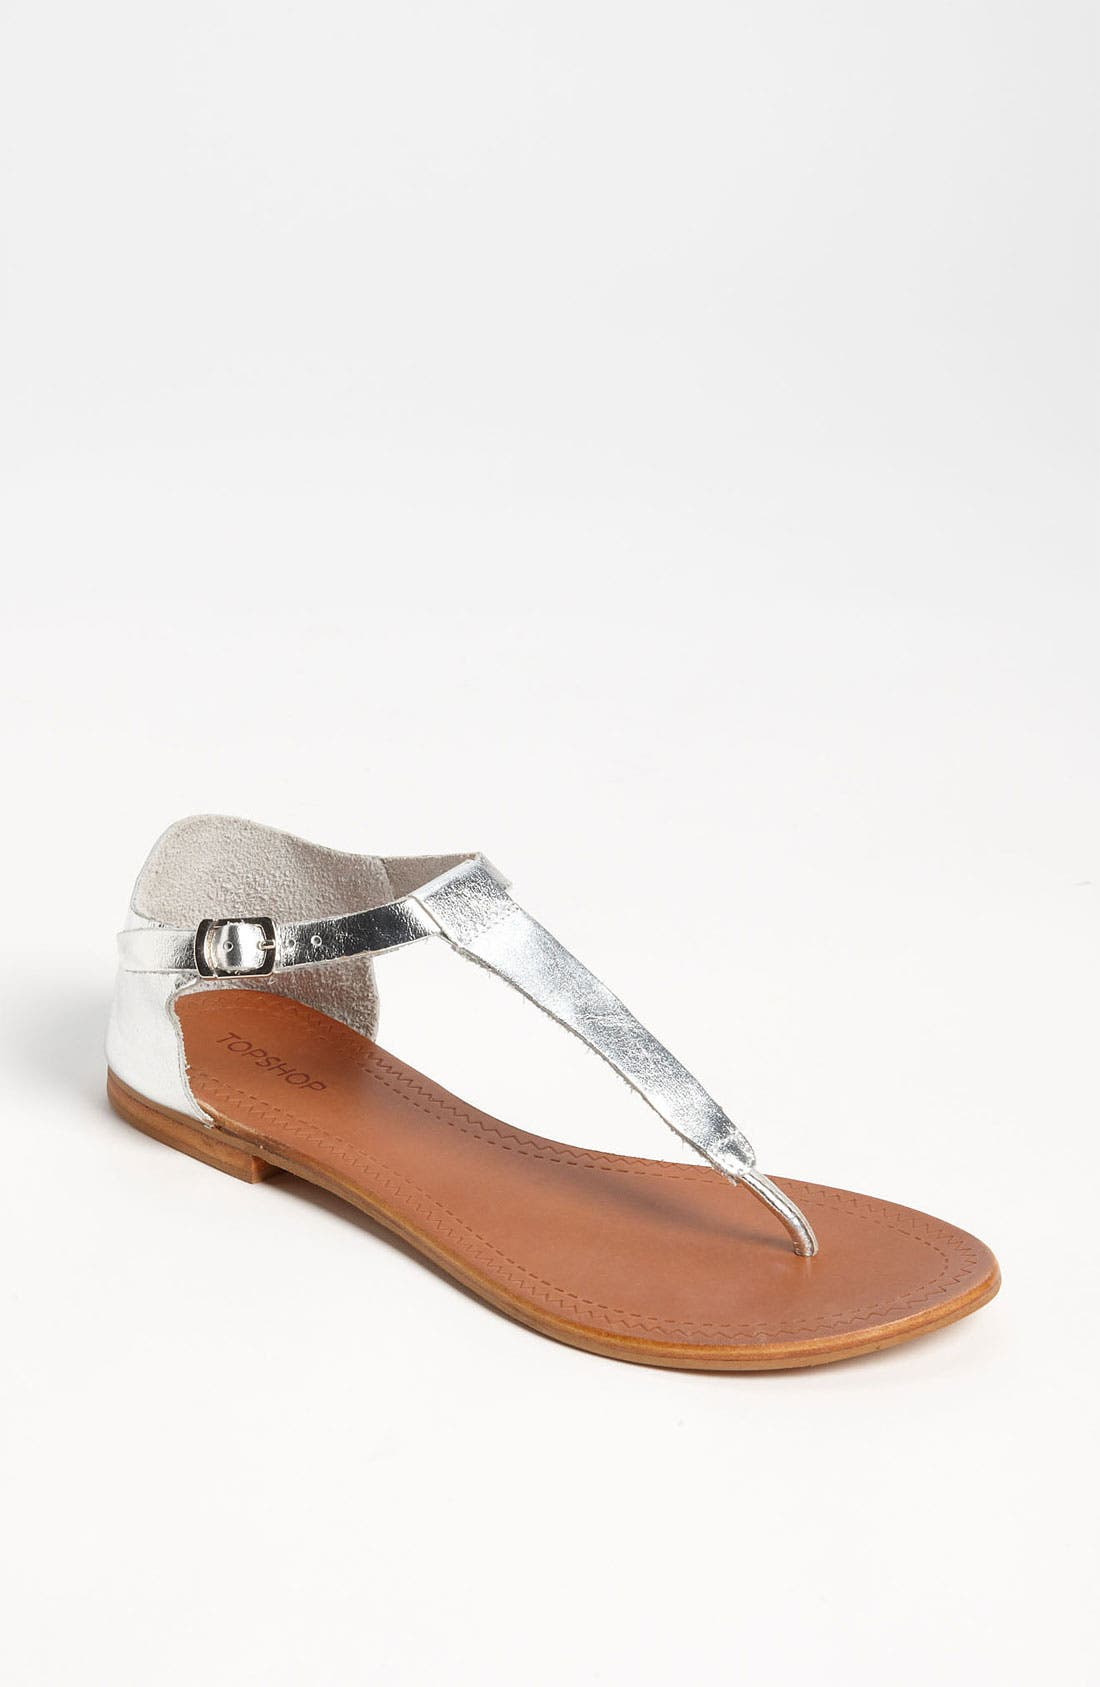 Alternate Image 1 Selected - Topshop 'Hix' Sandal